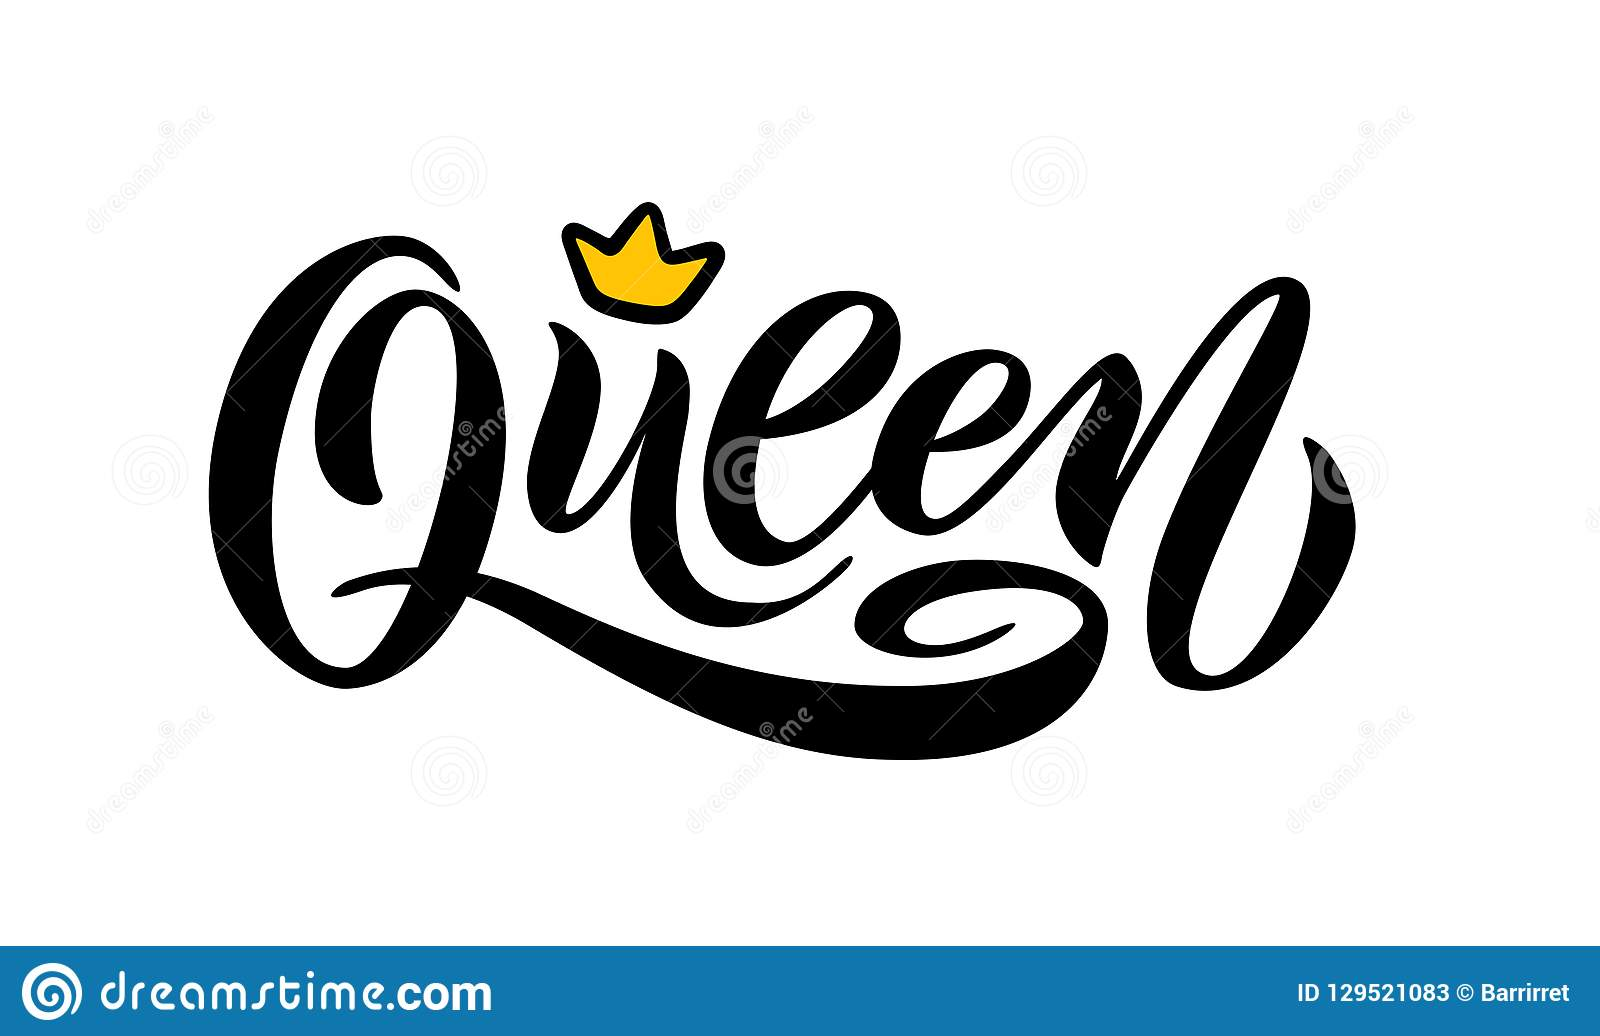 Queen word with crown calligraphy fun design to print on tee shirt hoody poster banner sticker card hand lettering text vector illustration